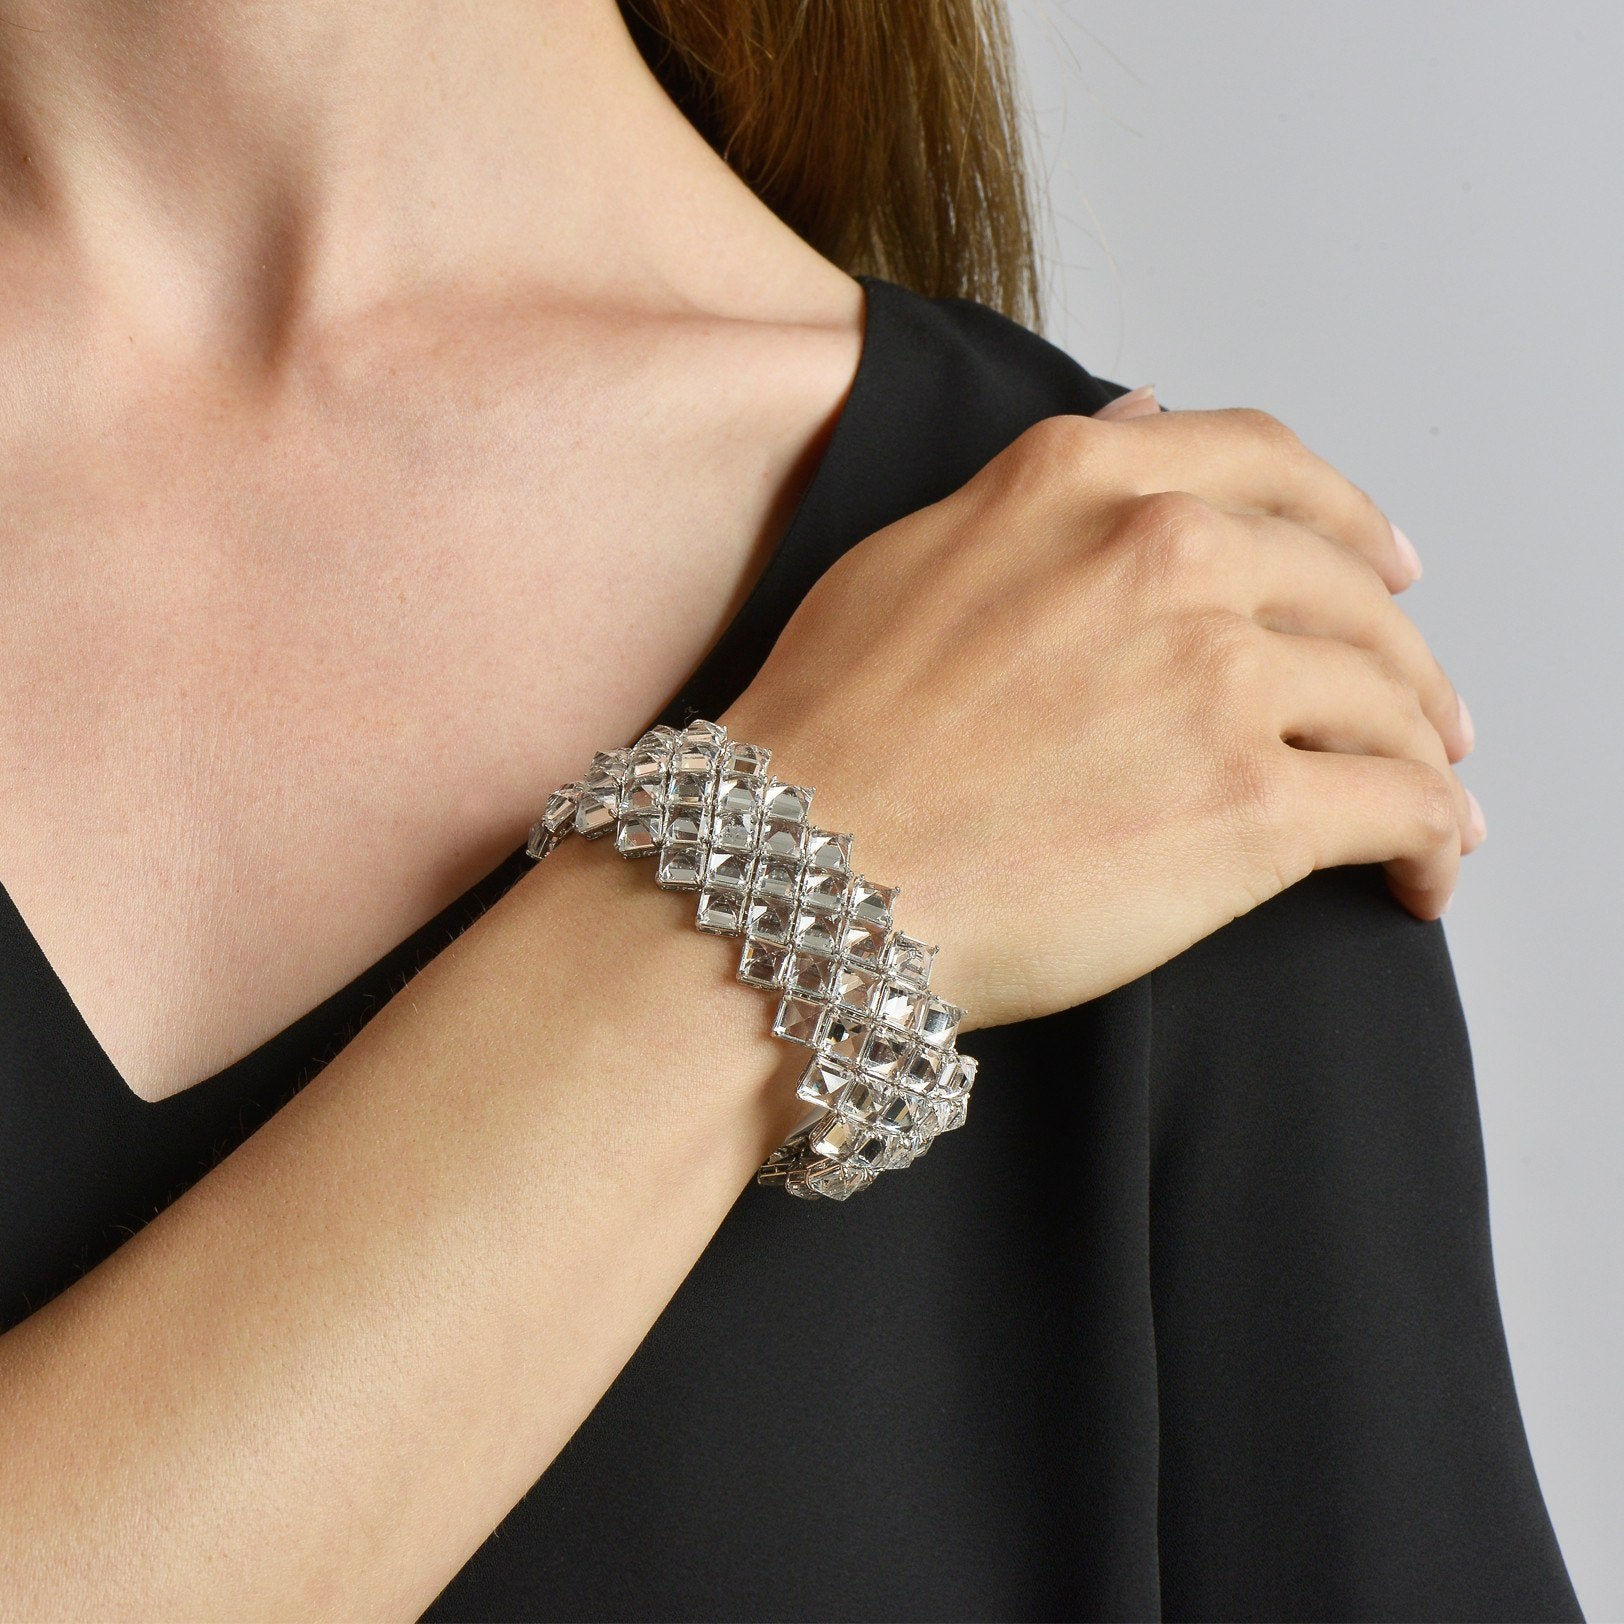 White Topaz 'Very PC'® Bracelet - Paolo Costagli - 2